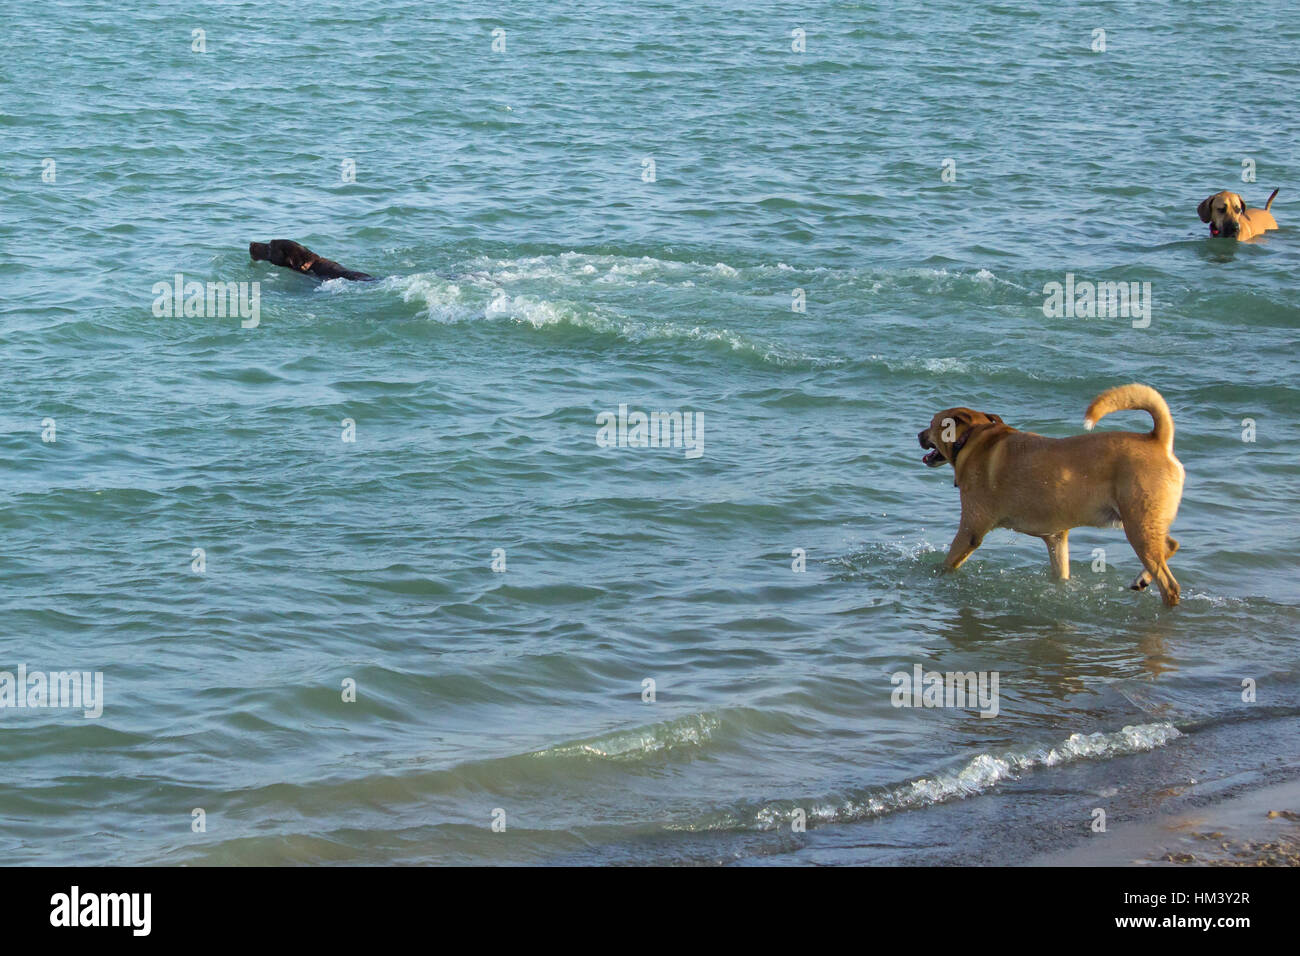 Black Labrador retriever mix swimming in a dog park pond while golden retriever mix enters the pond to join her Stock Photo